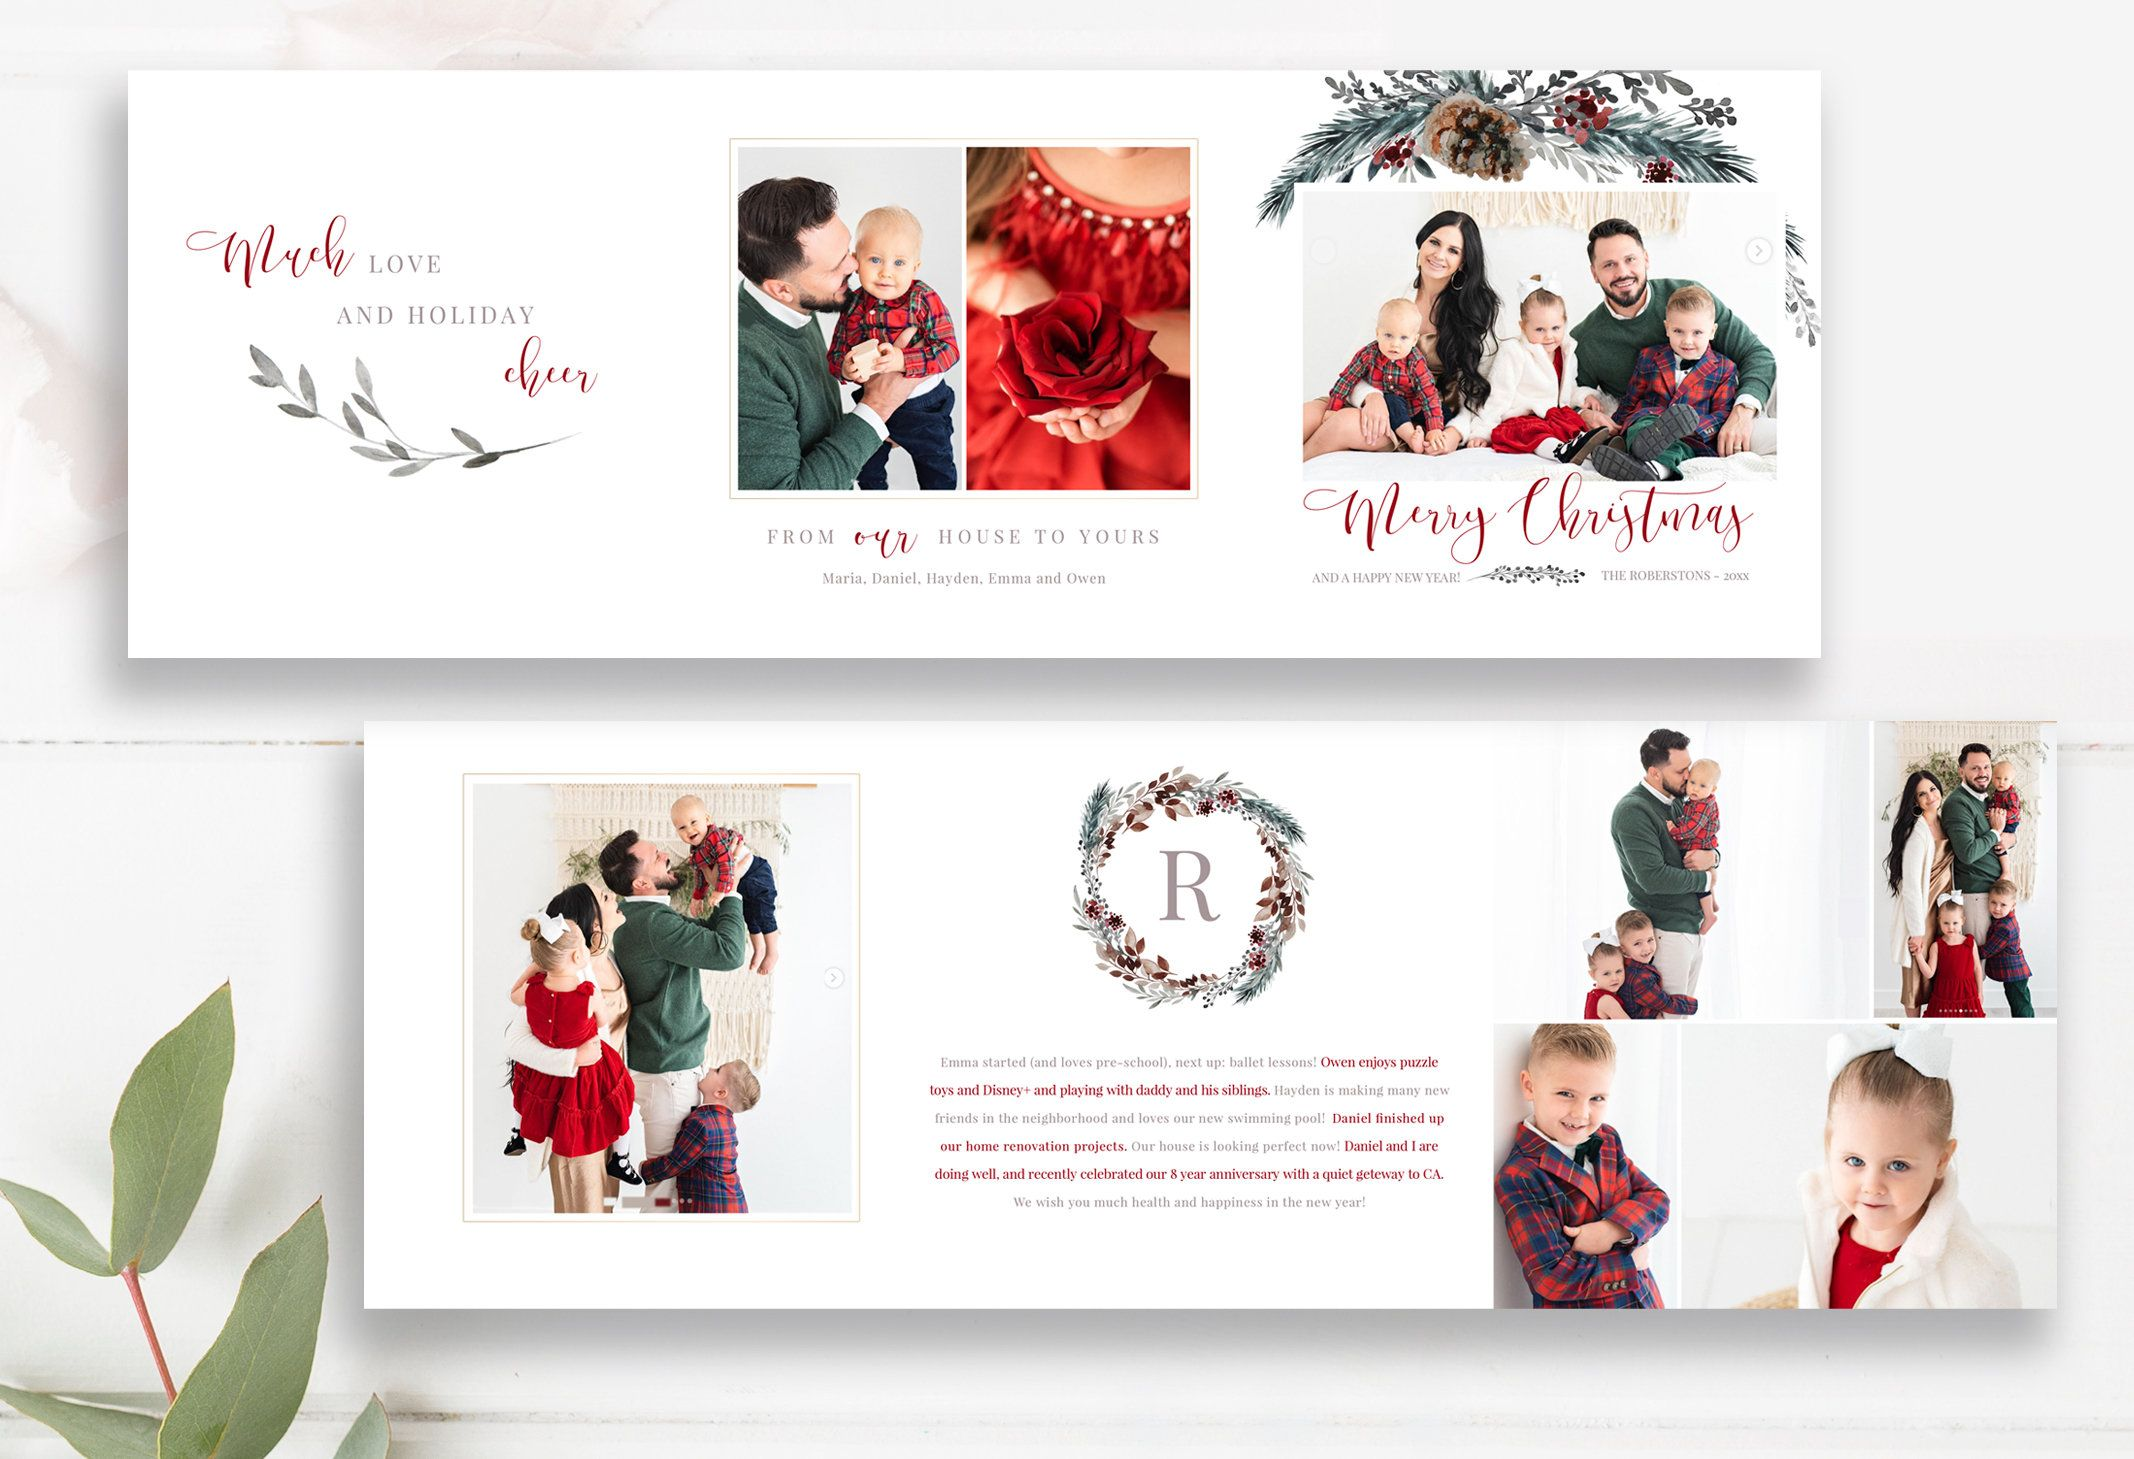 Merry Christmas 5x5 Trifold Photo Card Template Trifold Etsy Holiday Photo Cards Design Photo Card Template Christmas Photo Card Template